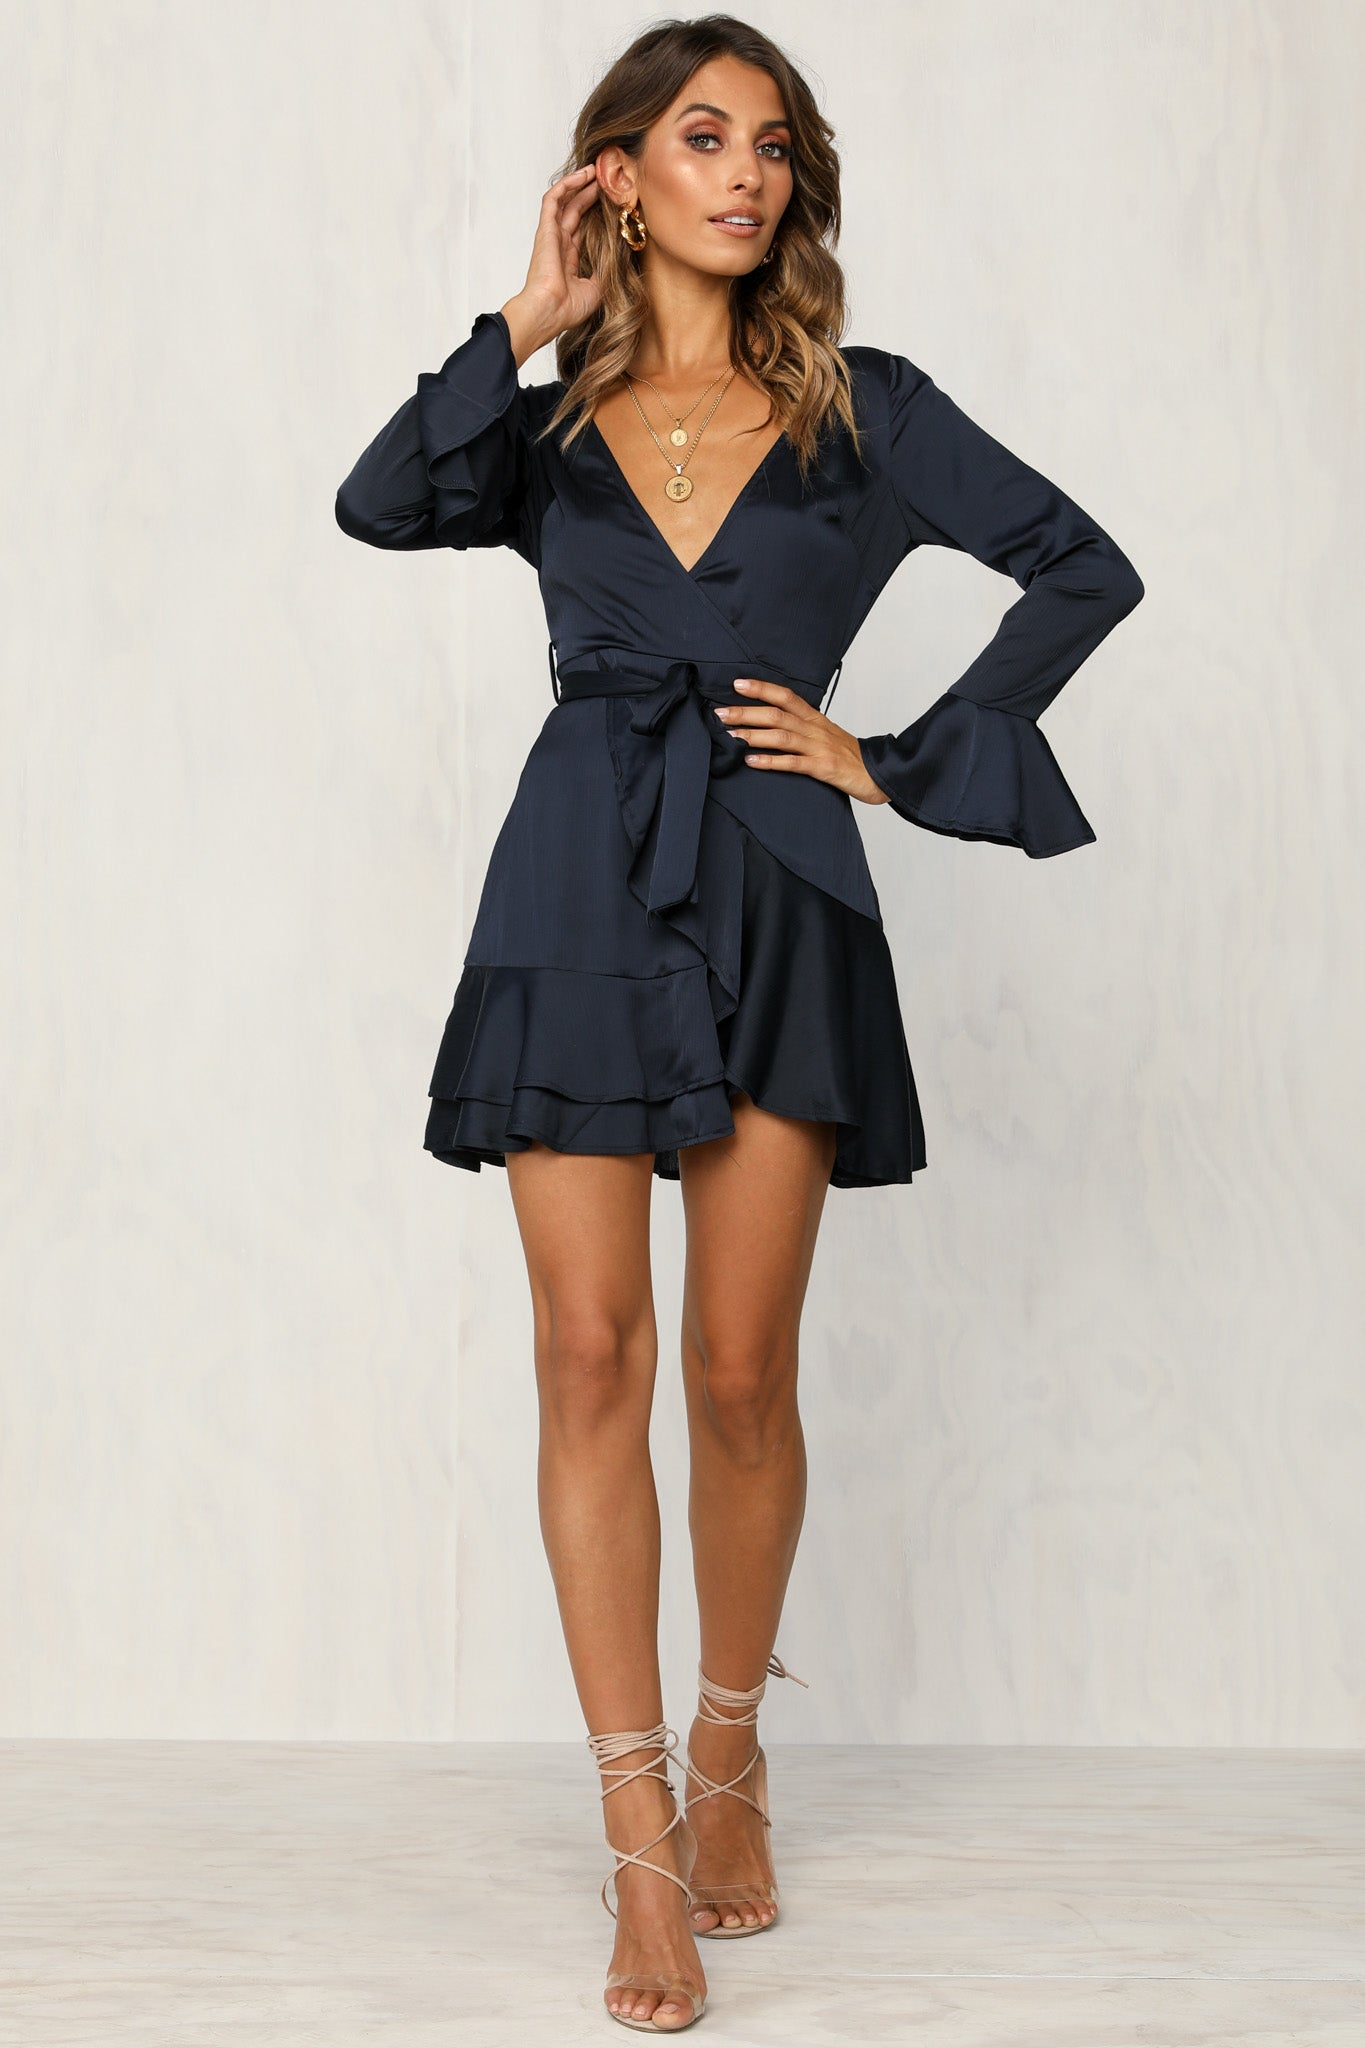 Wild Orchid Dress (Navy)